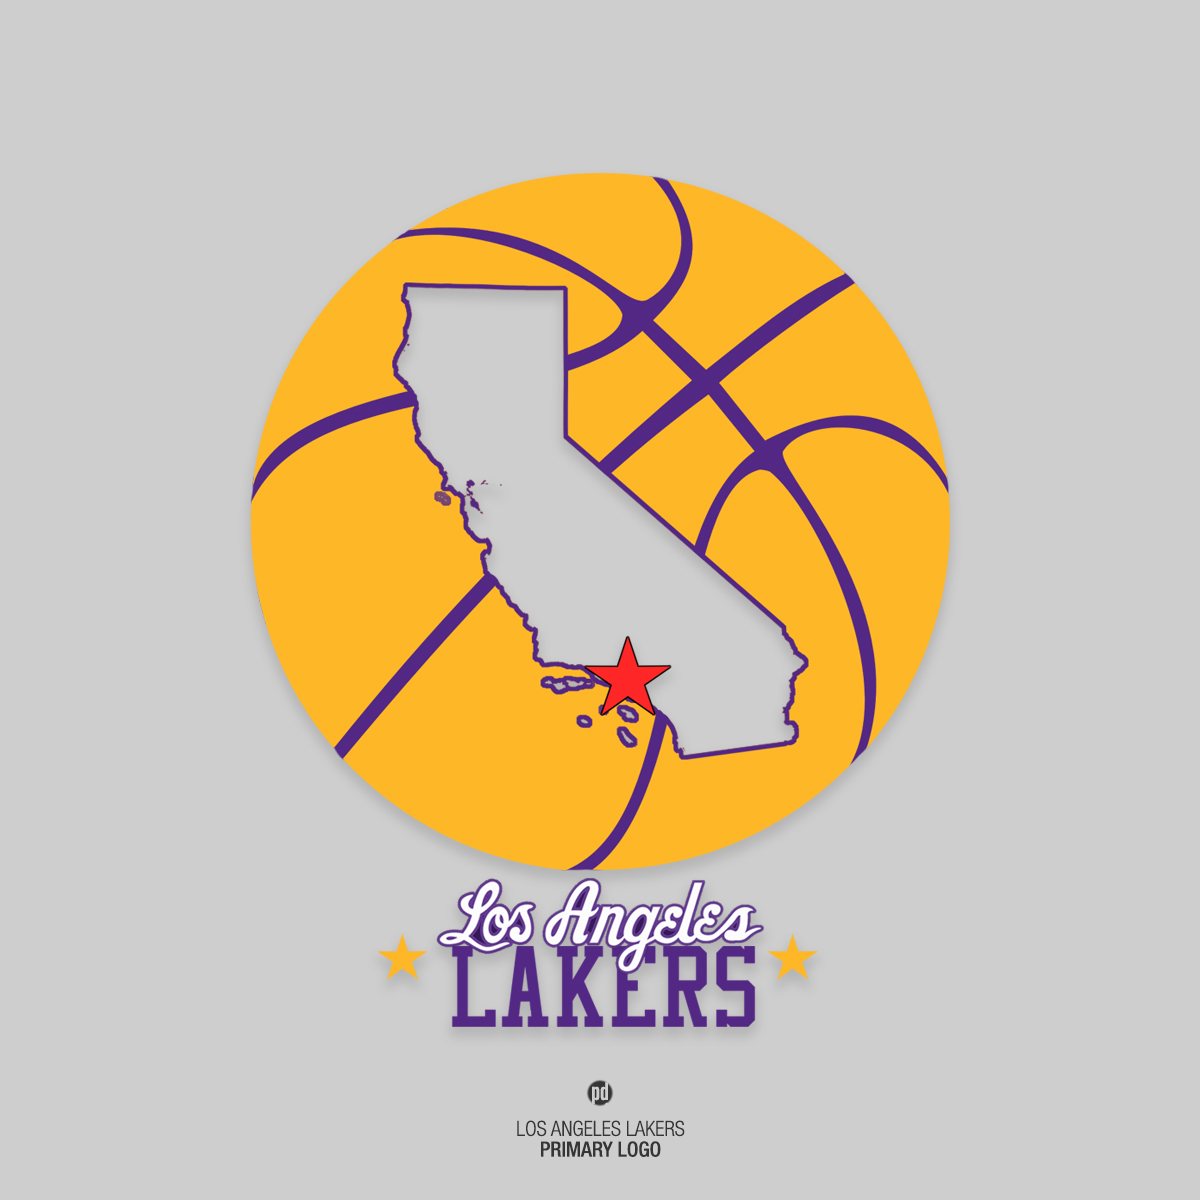 Los angeles lakers rebrand project primary logo hooped up los angeles lakers rebrand project voltagebd Image collections